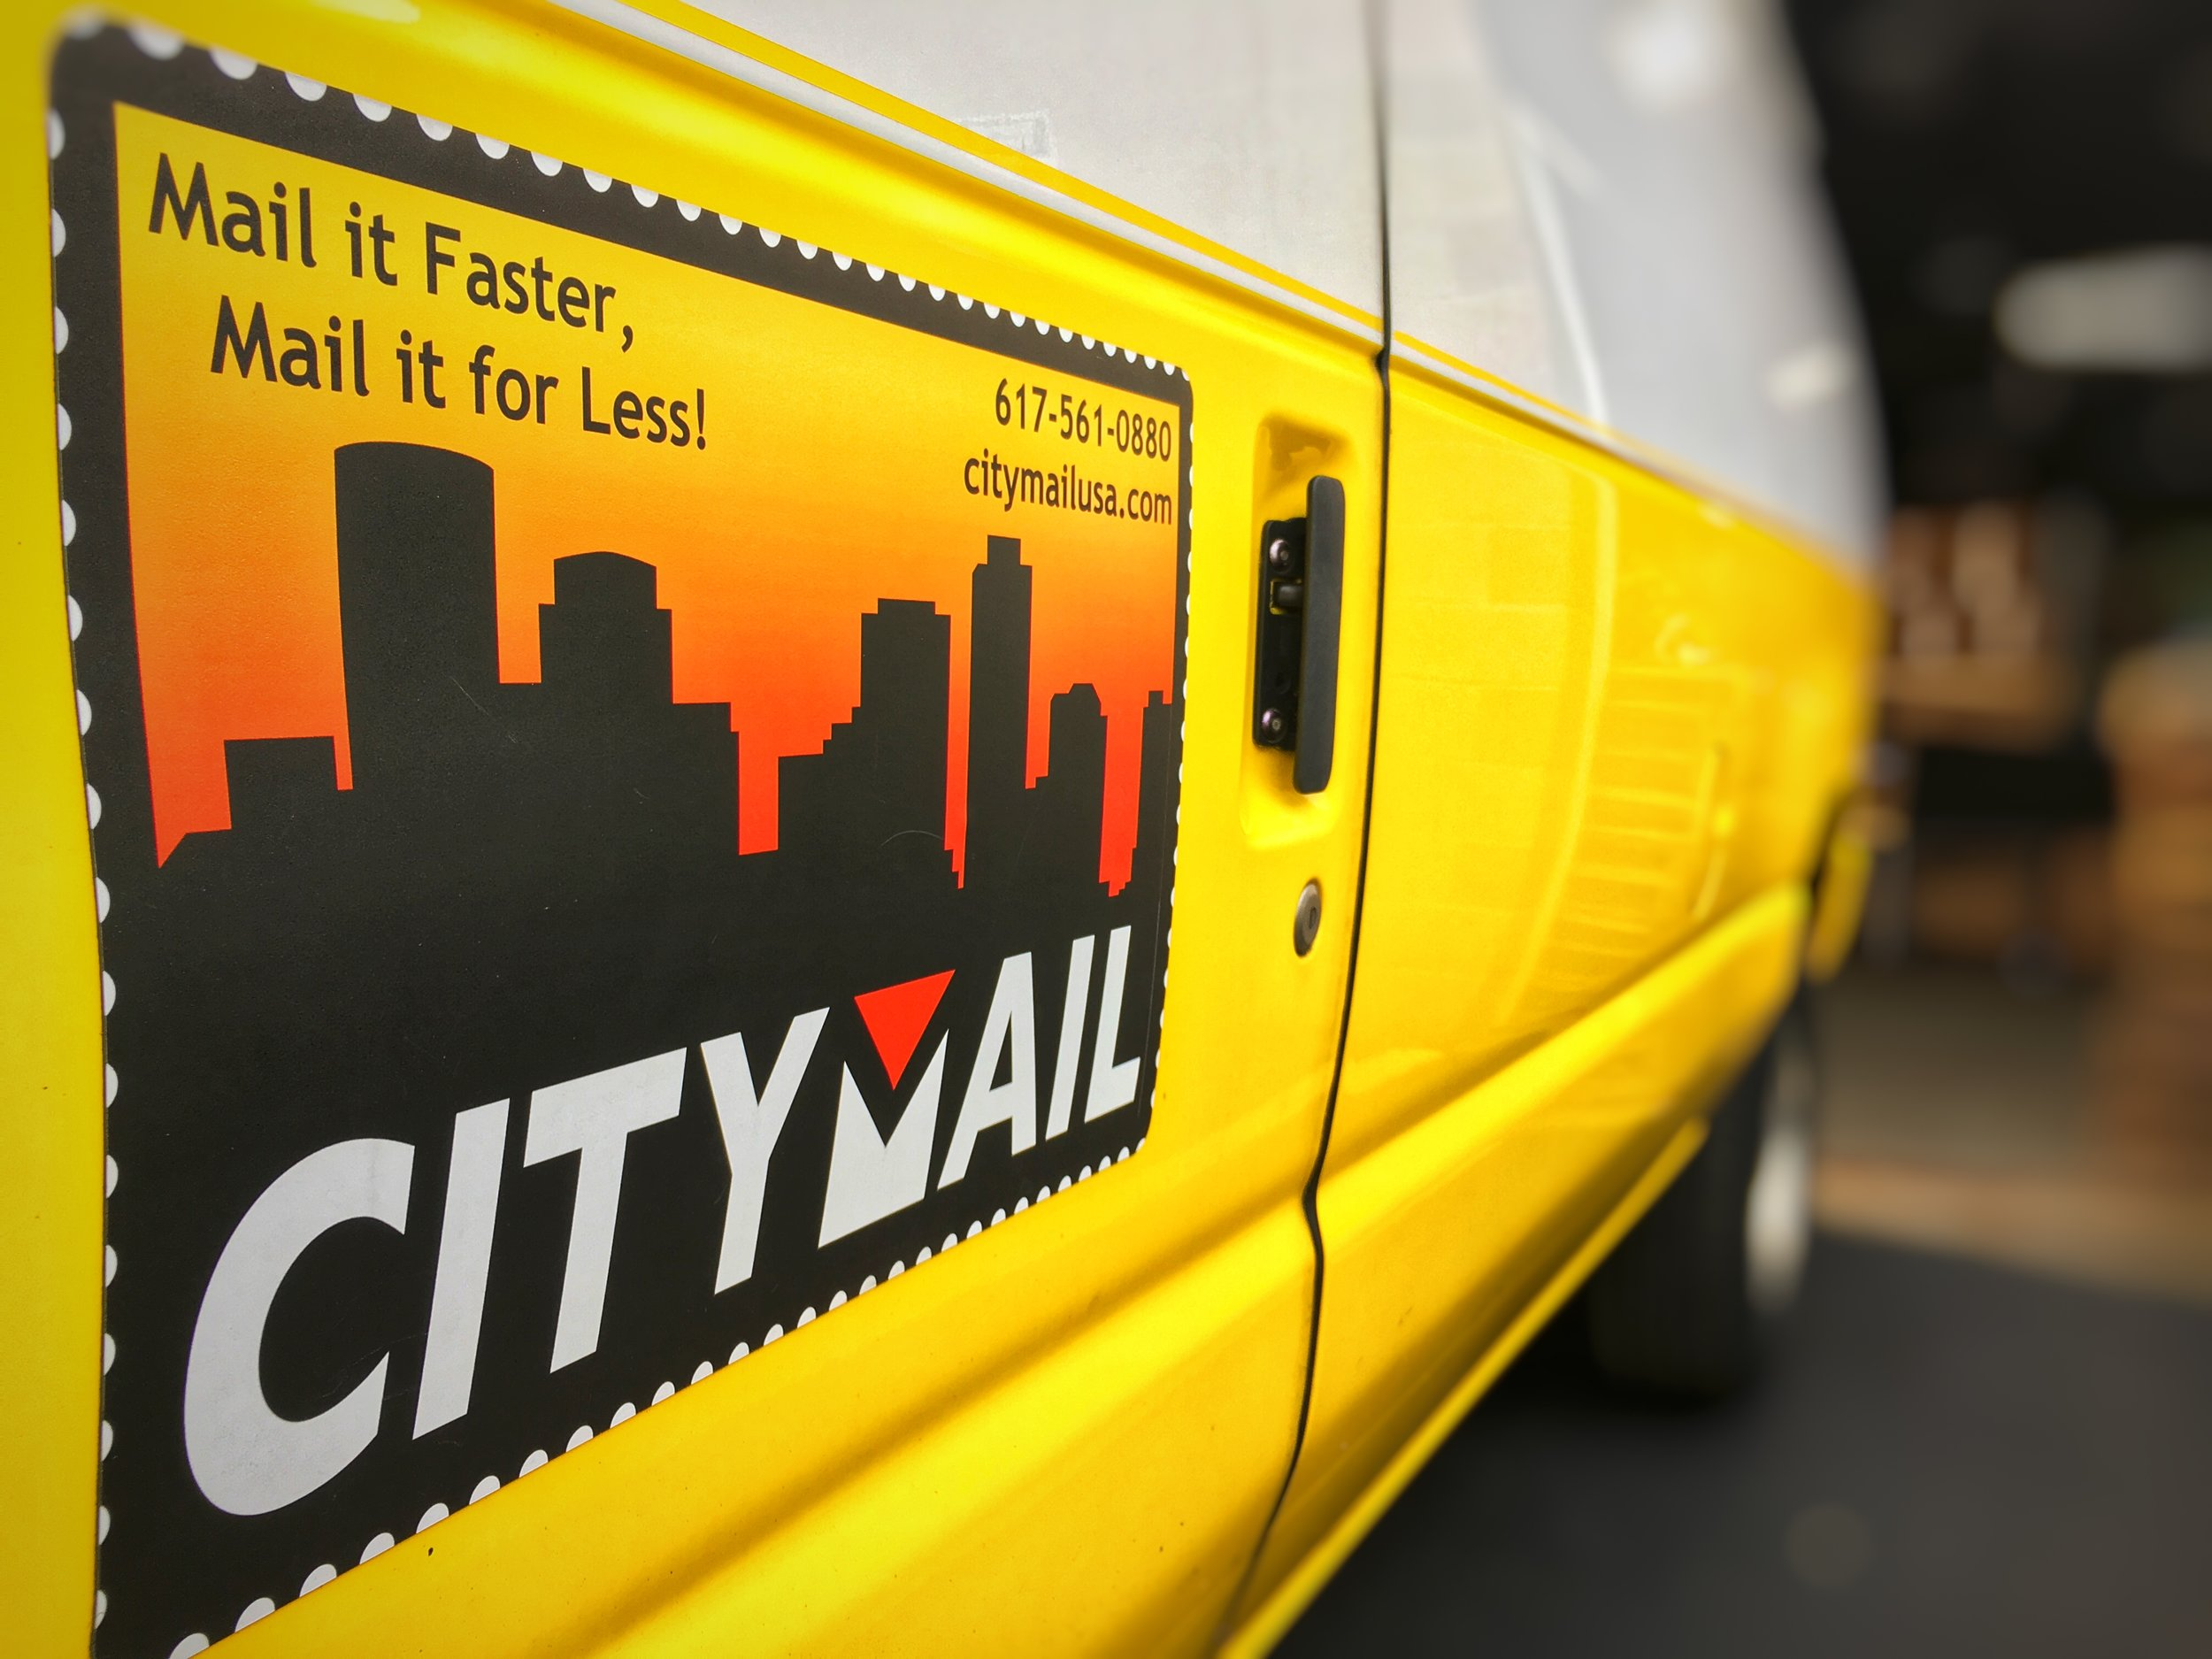 Mail It Faster, Mail It For Less - CITYMAIL USA - Peabody, MA 01960